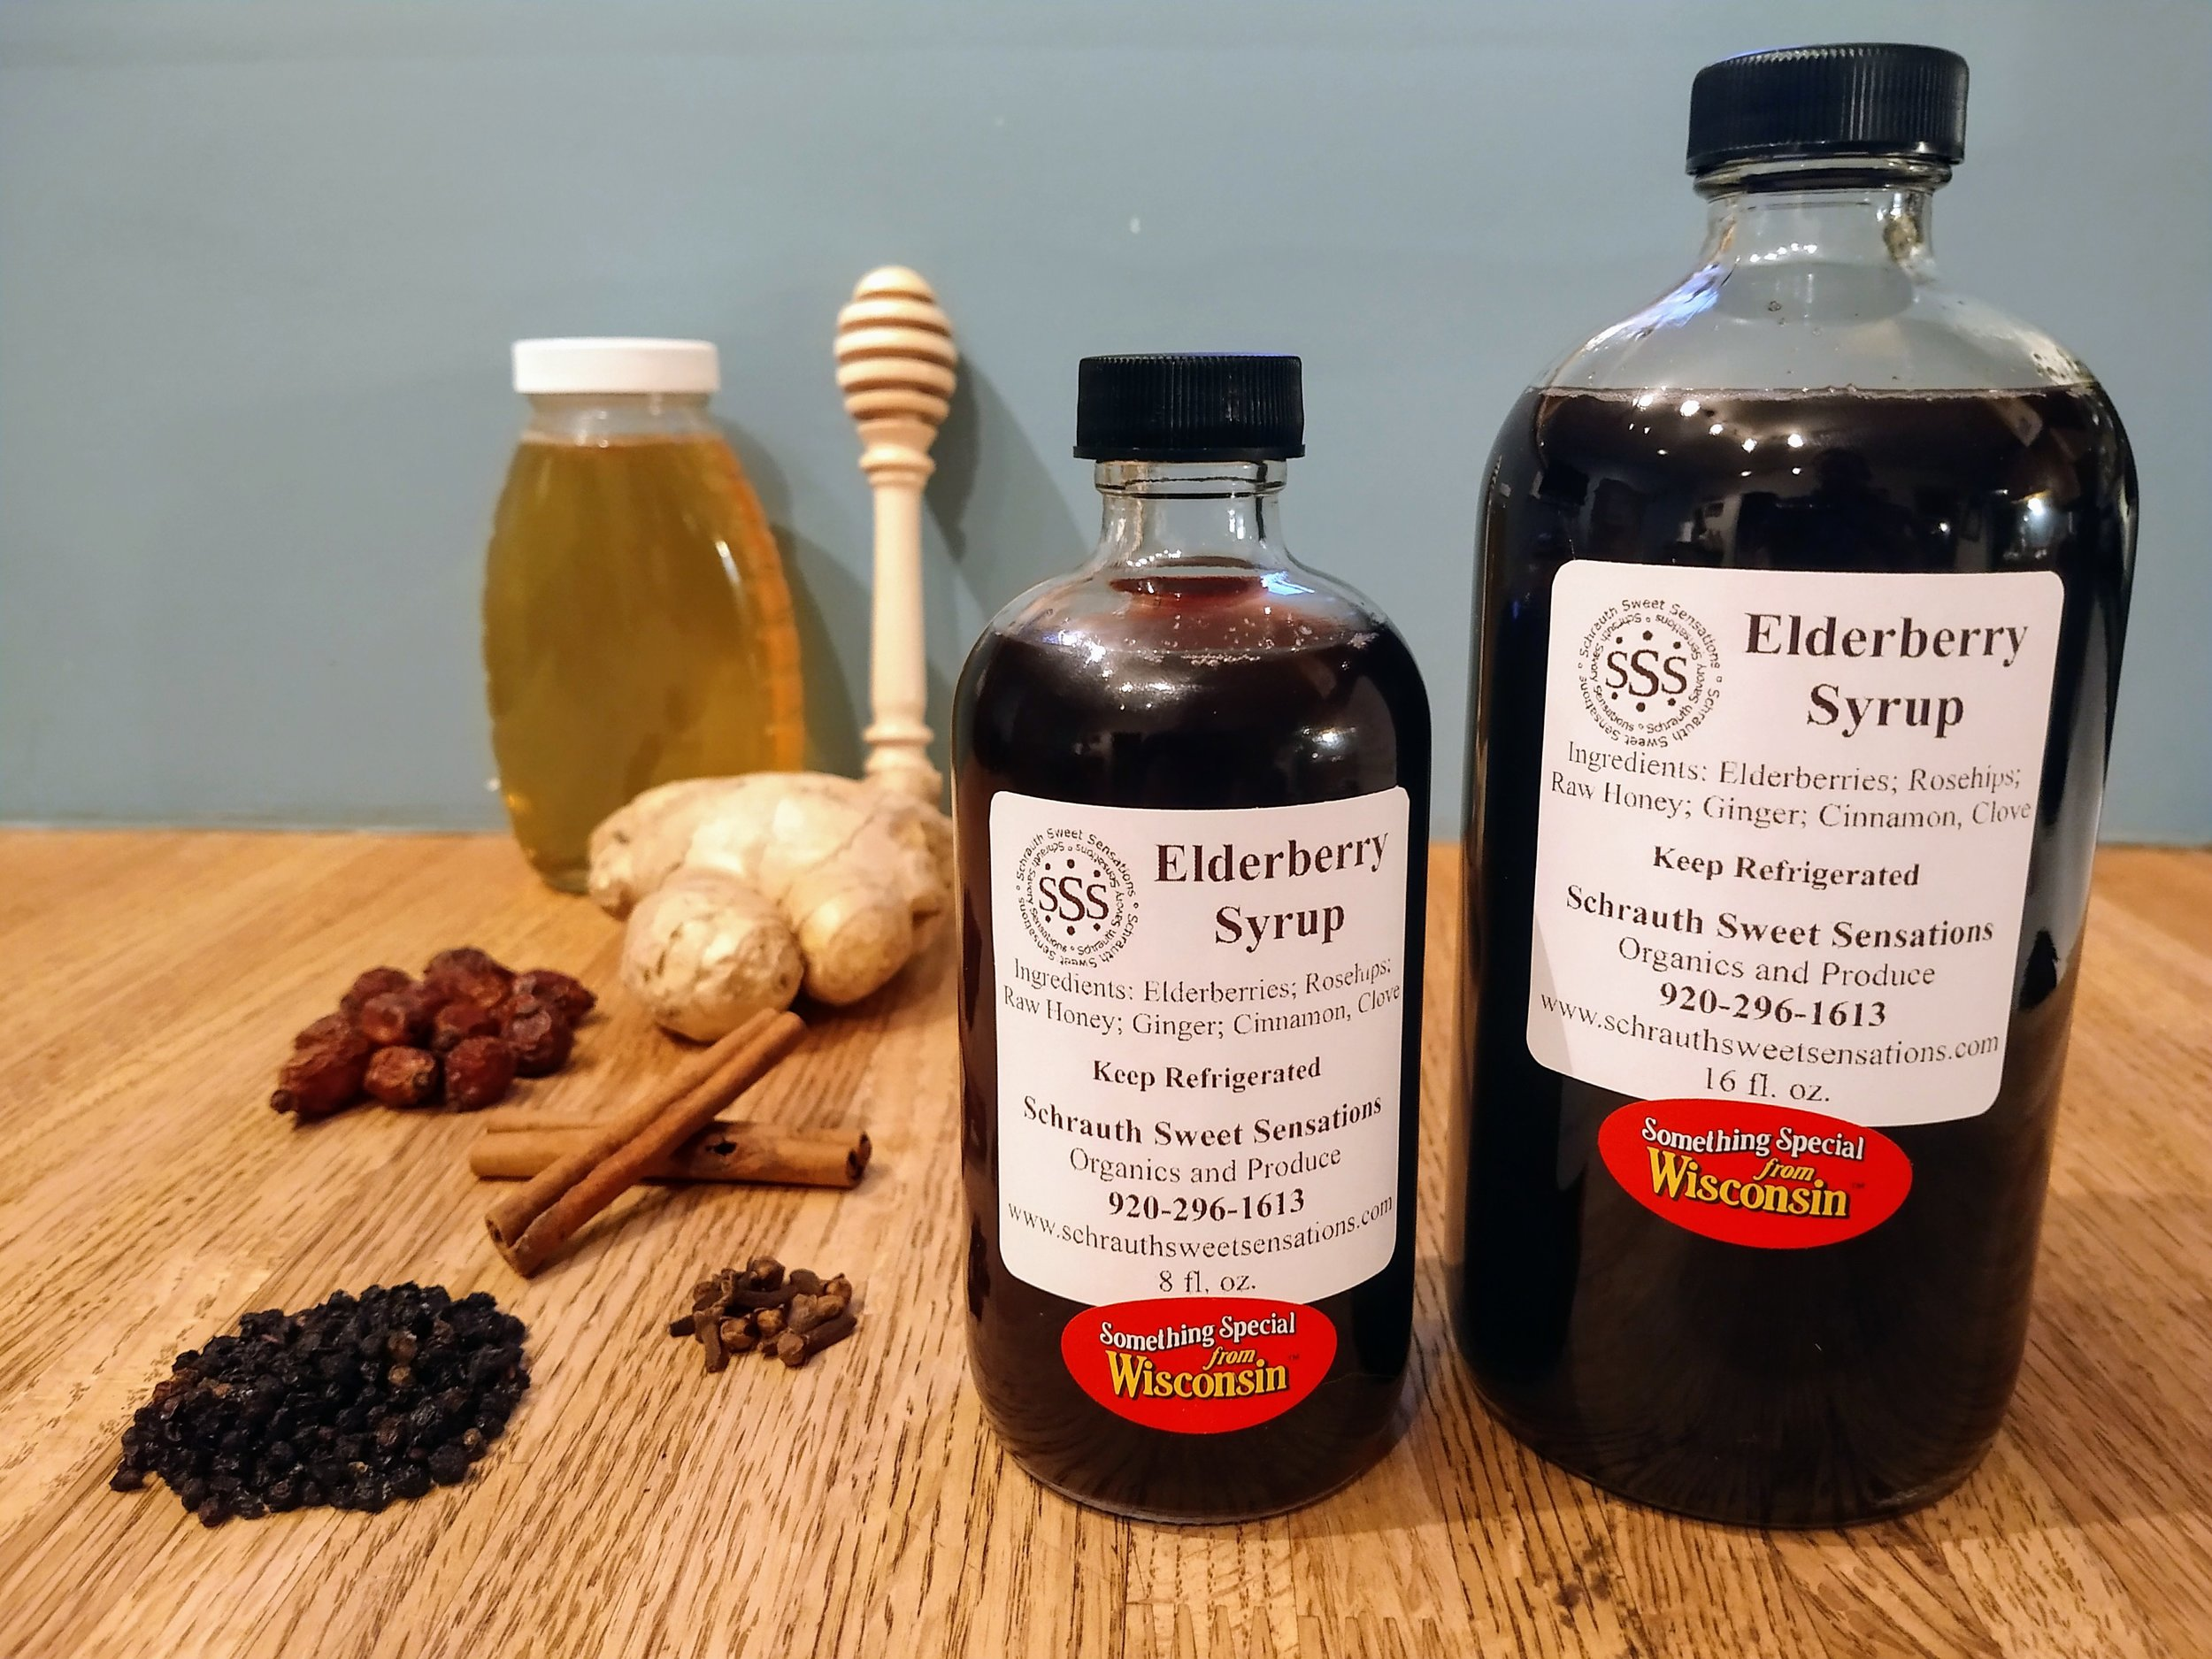 Elderberry Syrup - Our Elderberry Syrup is made with our raw, non pasteurized Honey along with Elderberries, Rosehips, Cinnamon, Clove, and Ginger!$12 - 8oz. Bottle$22- 16oz. Bottle